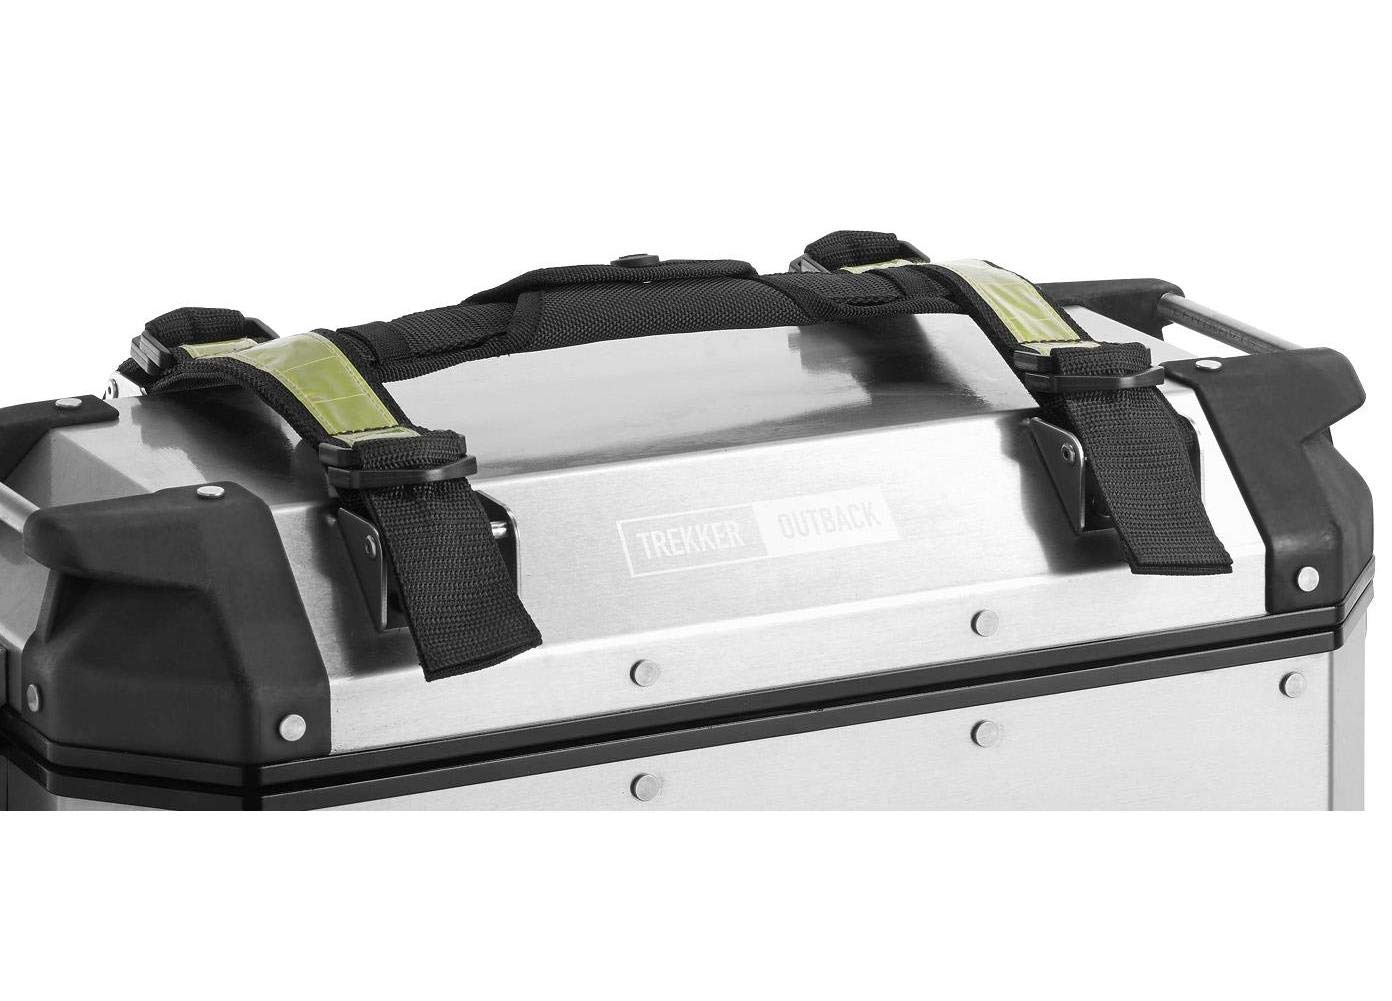 Givi E143  Trekker Outback Carrier 37/48, Black, 40